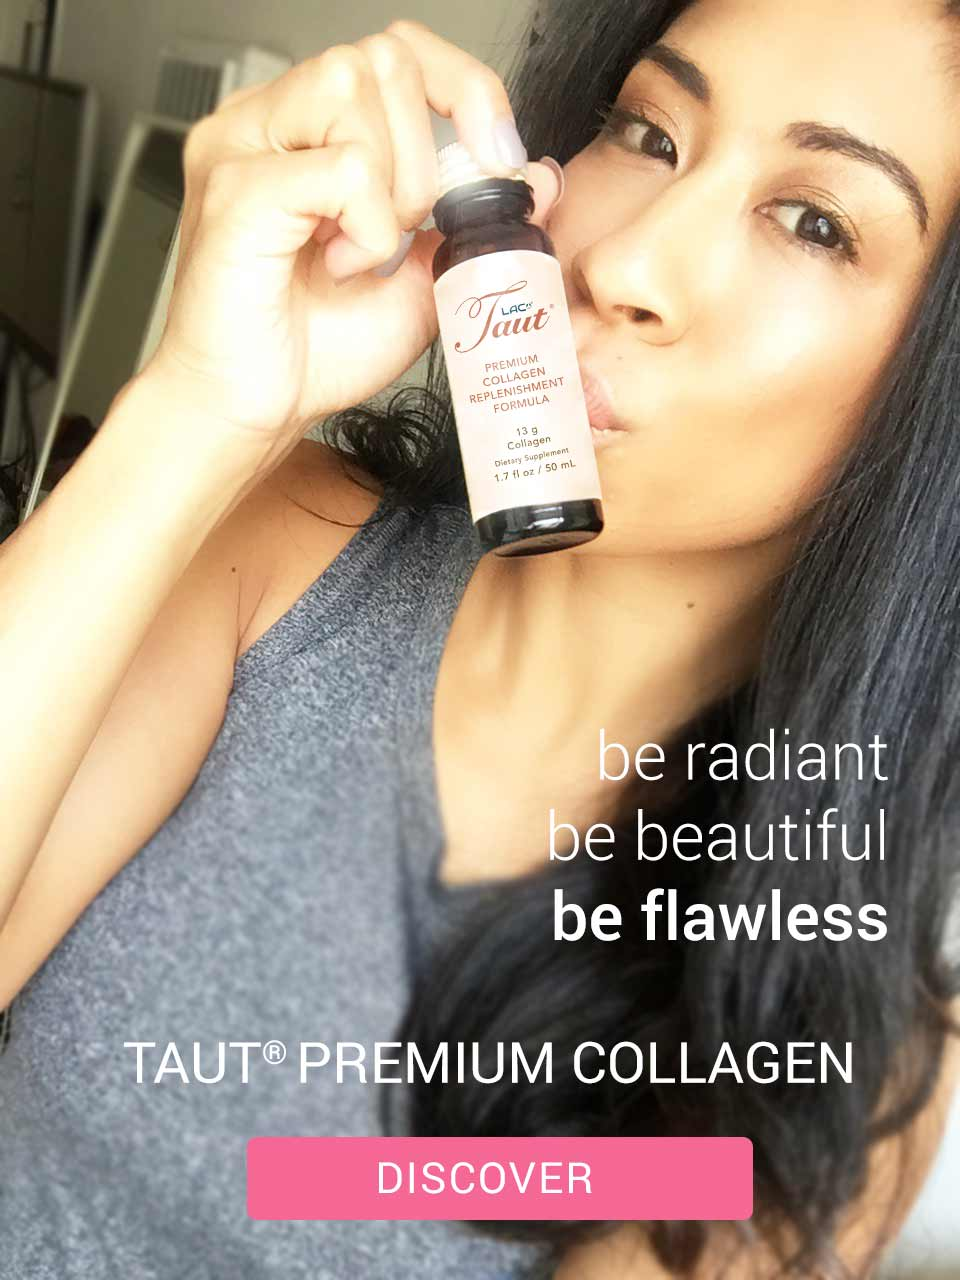 Be Radiant. Be Beautiful. Be Flawless. Taut Premium Collagen Drink.  | RenewAlliance dba TautUSA